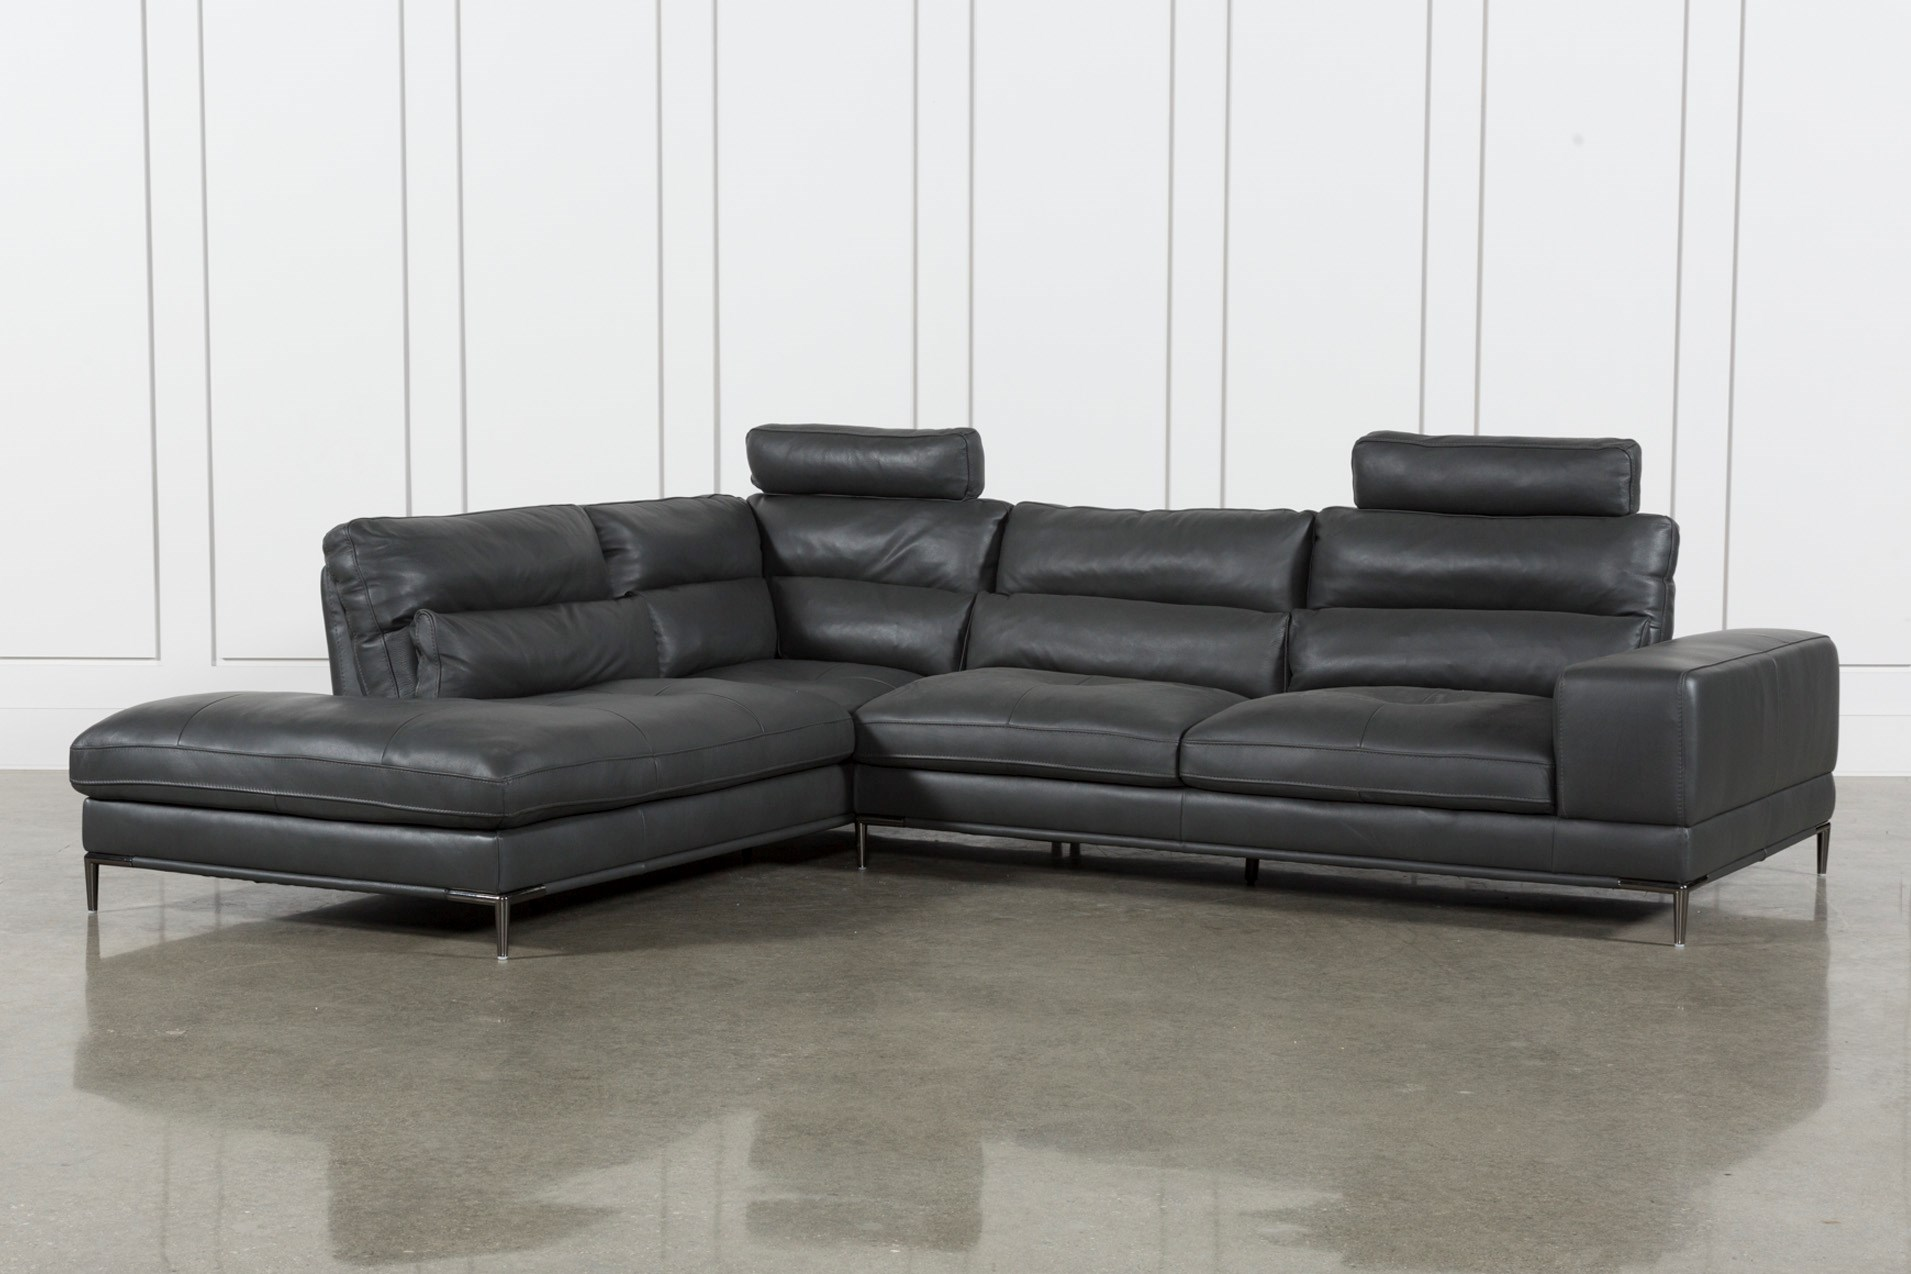 modern casa sofa leather grey audio dark sectional eco system w divani citadel